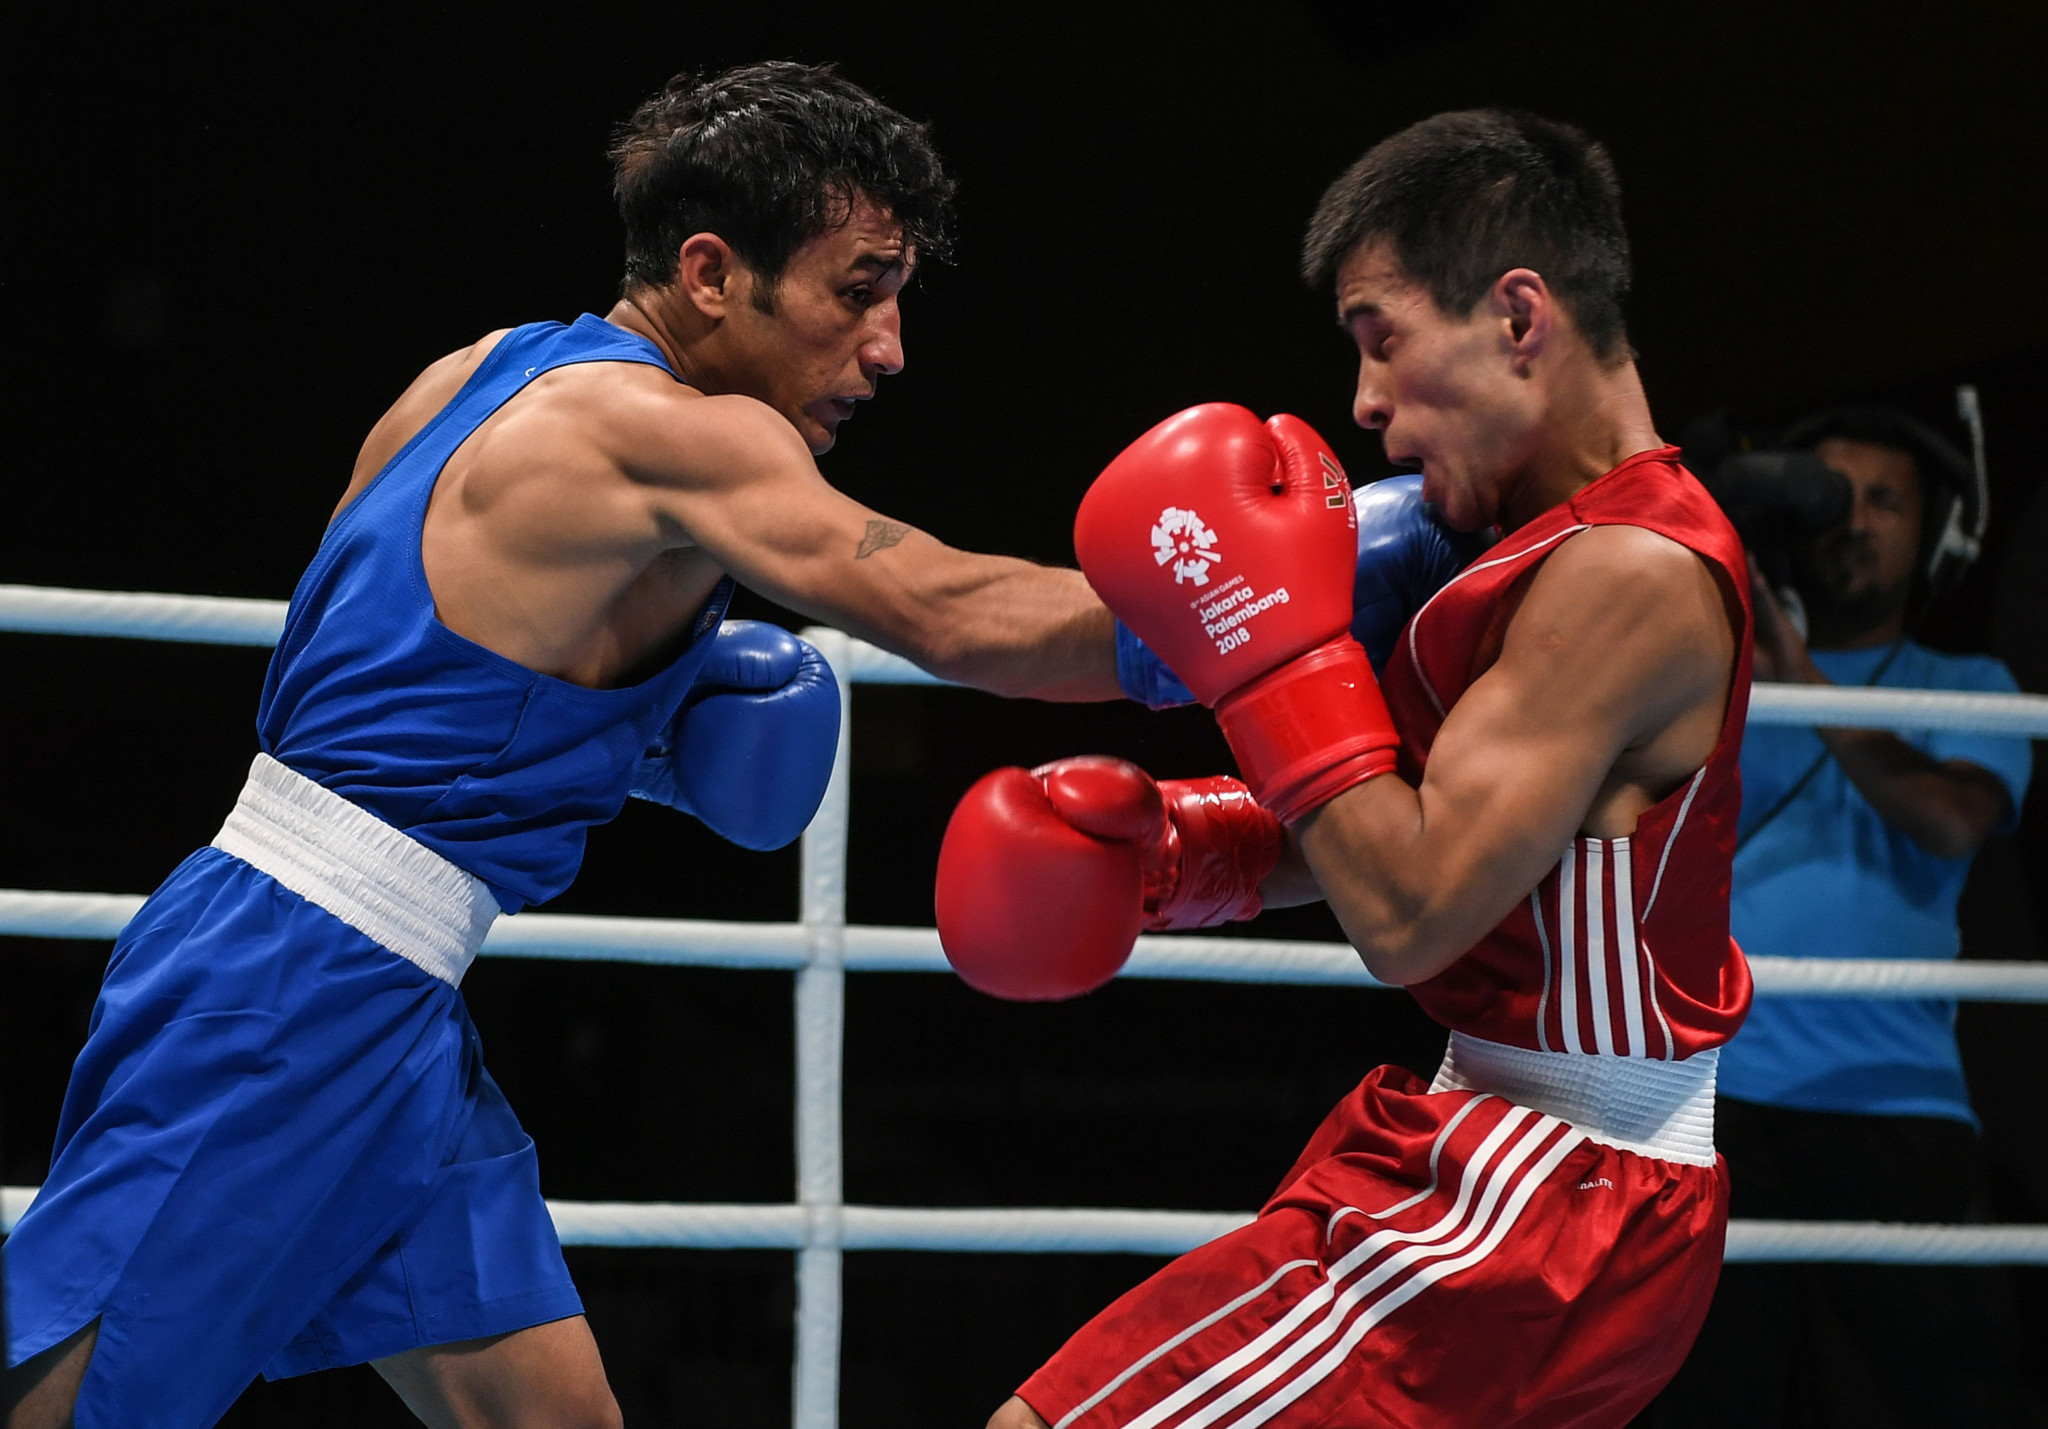 Mirlan Turkbay Uulu previously won a bronze medal at the Asian Boxing Championships ©Getty Images